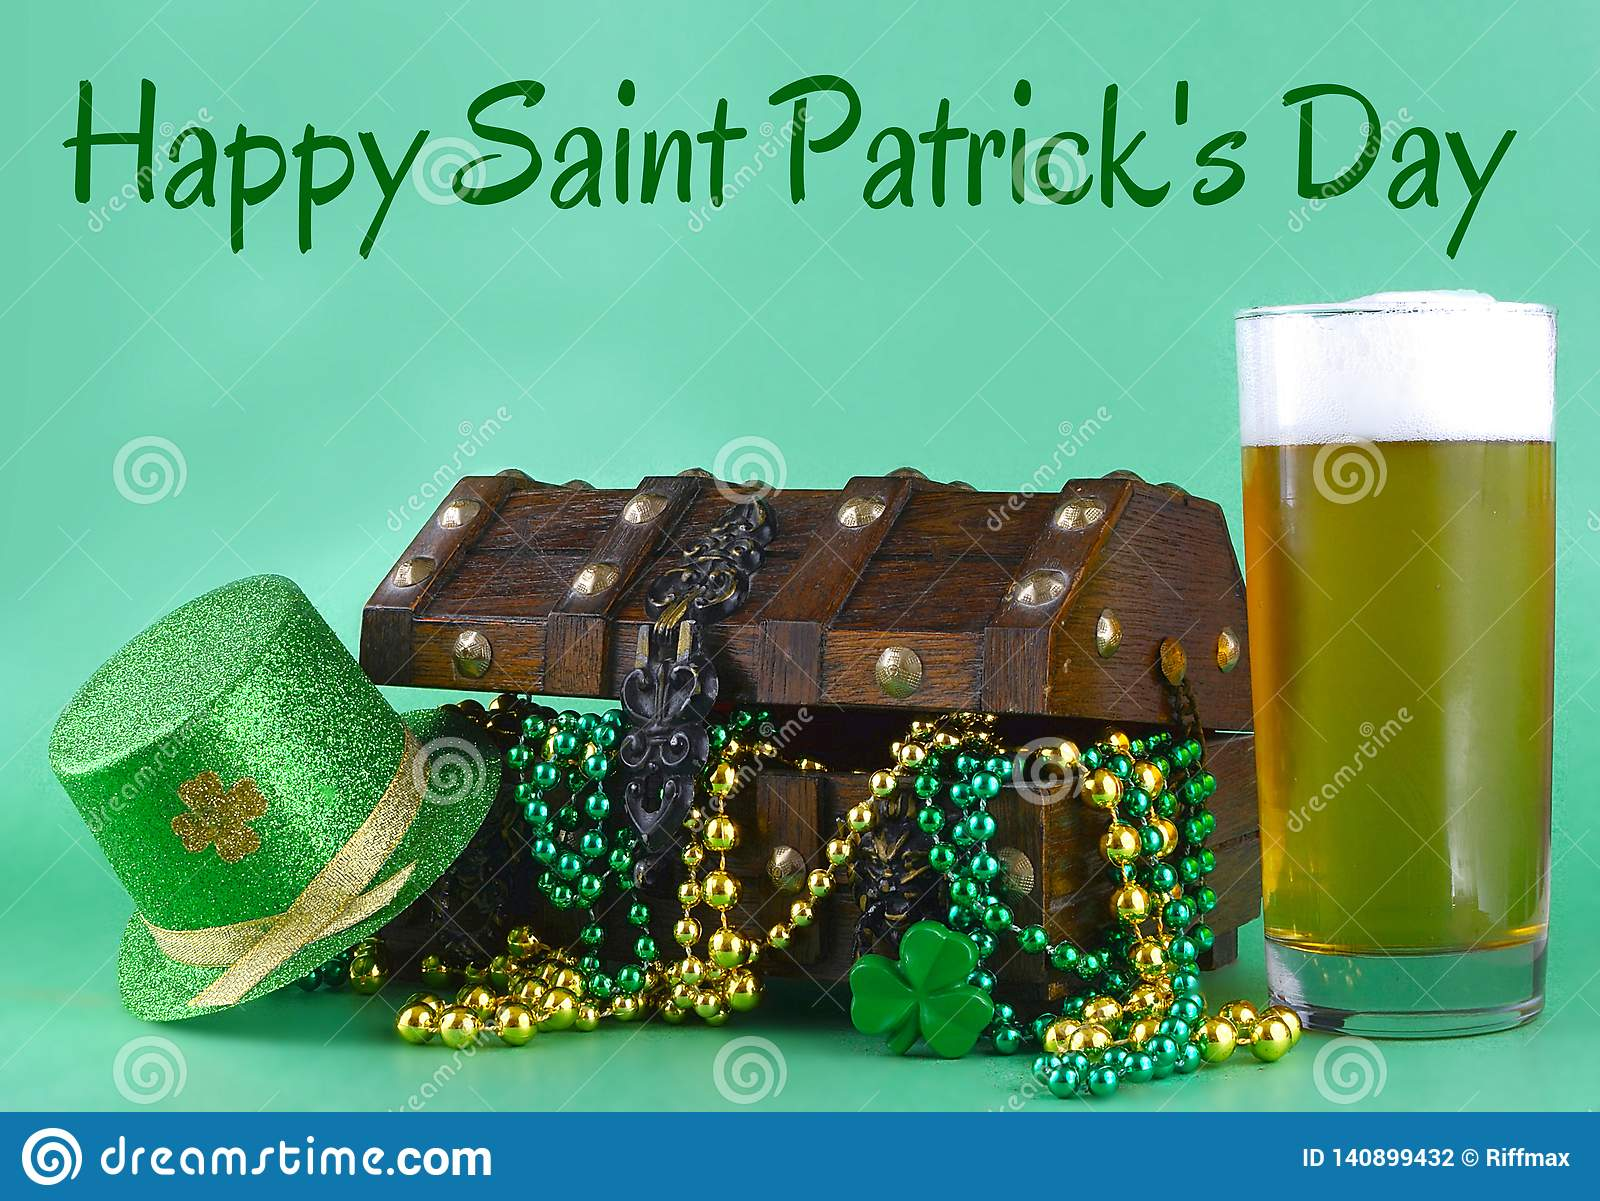 Image for Saint Patrick`s Day on March 17th. Treasure chest to symbolize luck and wealth. A glass of beer and green hat added.